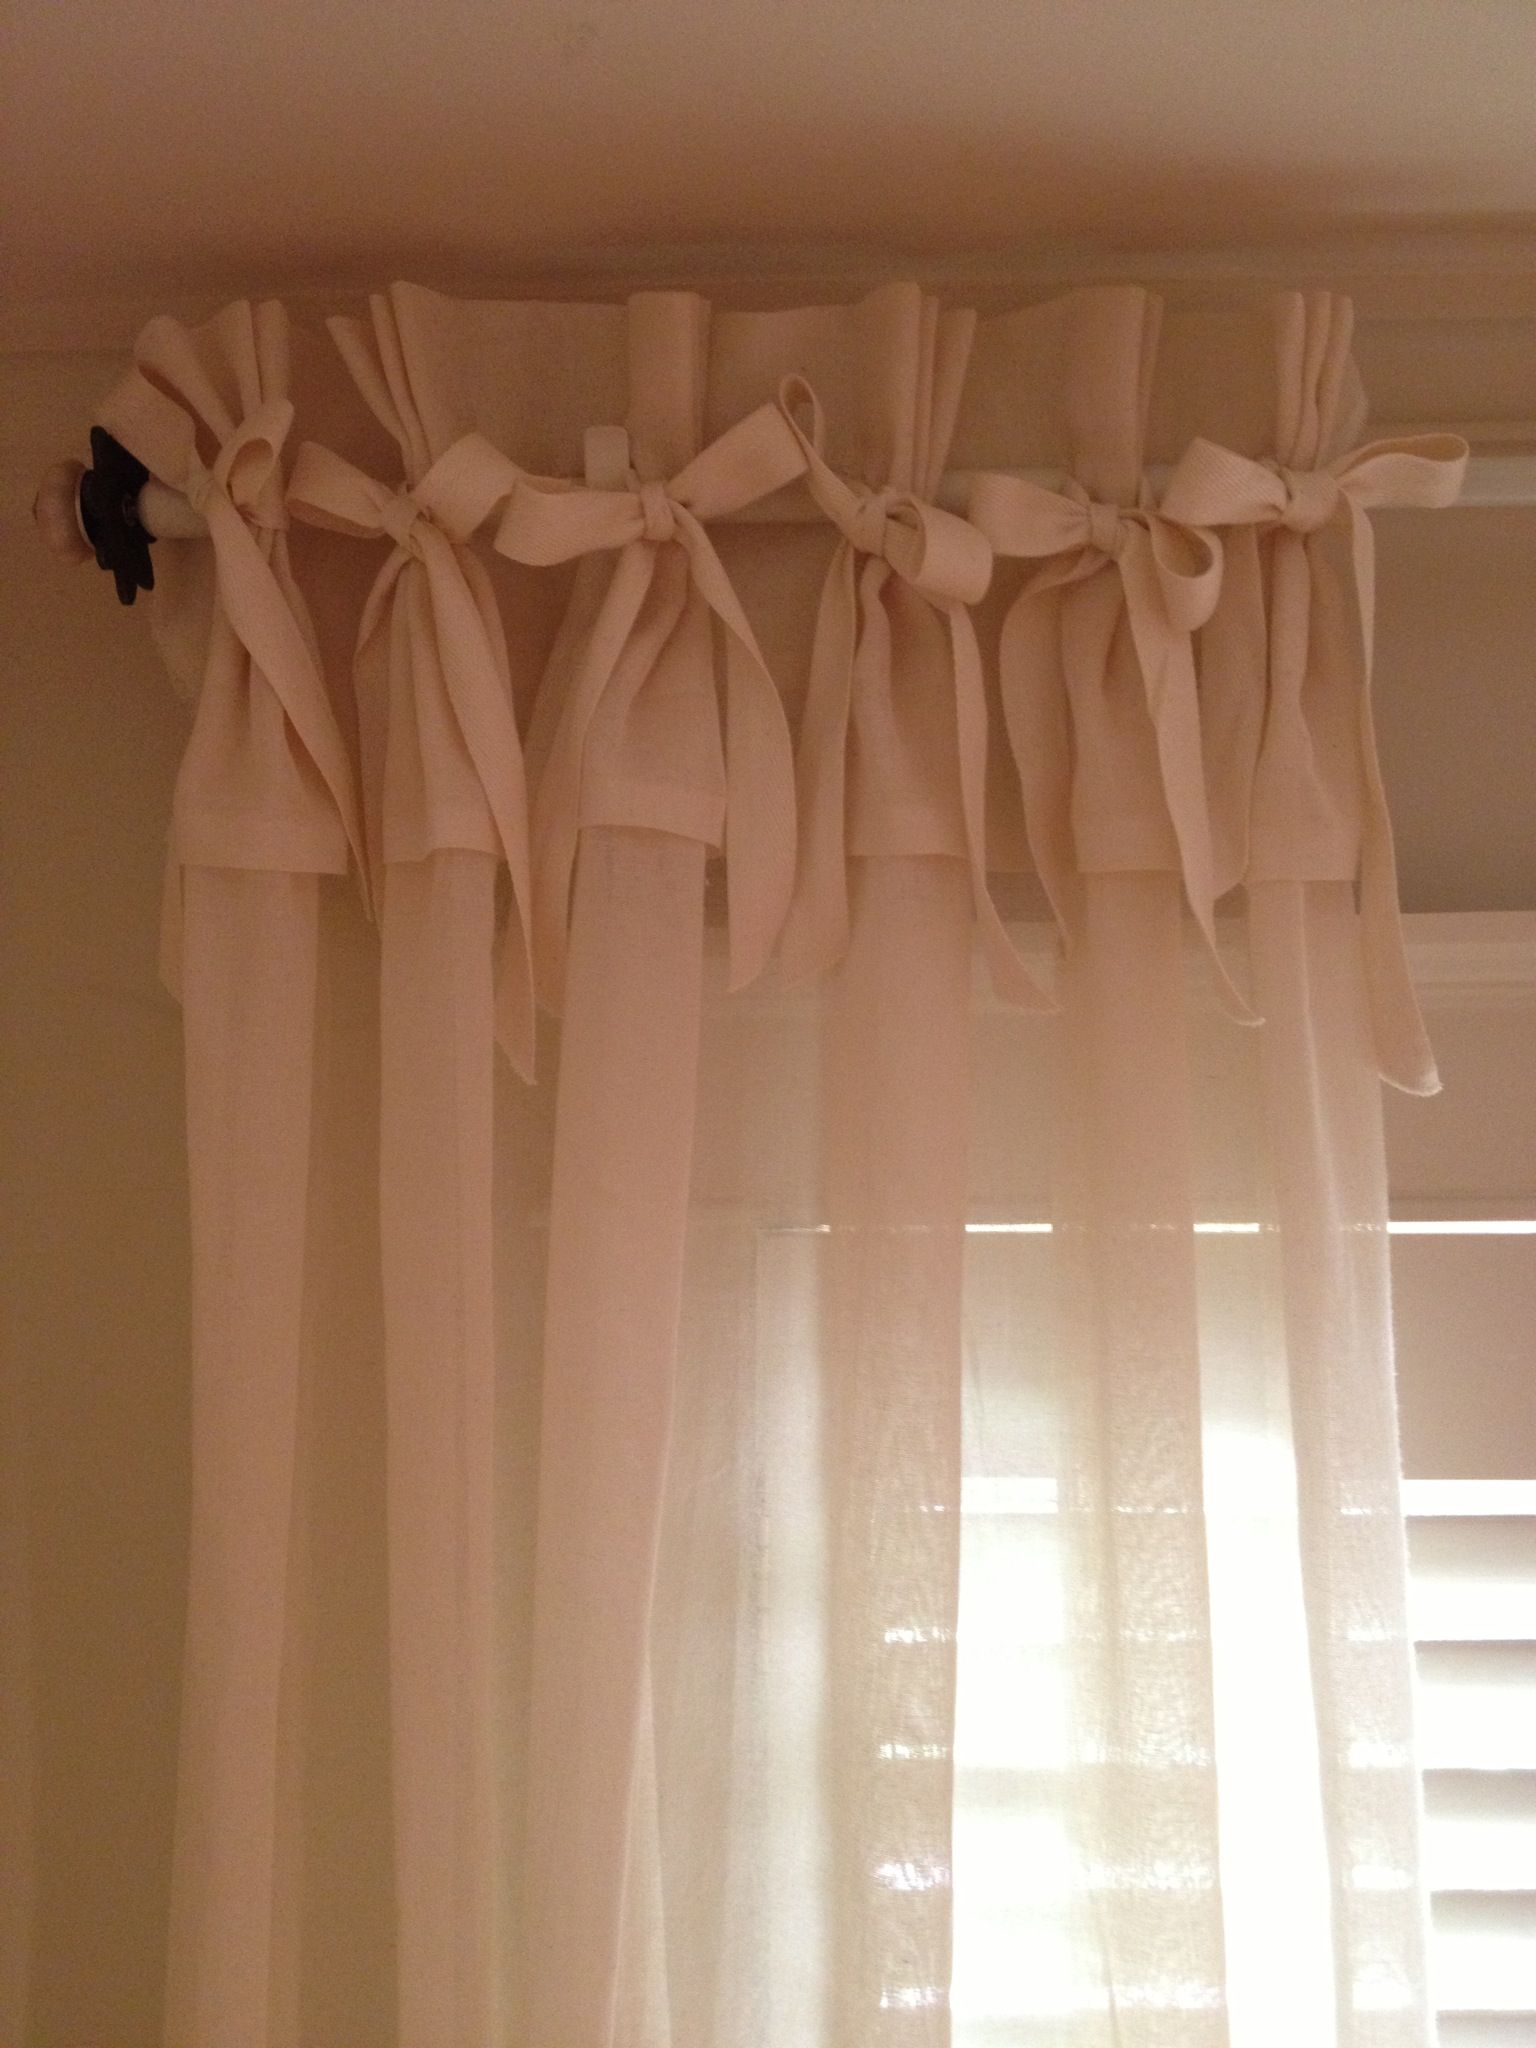 Marvelous How To Make No Sew Curtain Panels With Bows And Ruffles